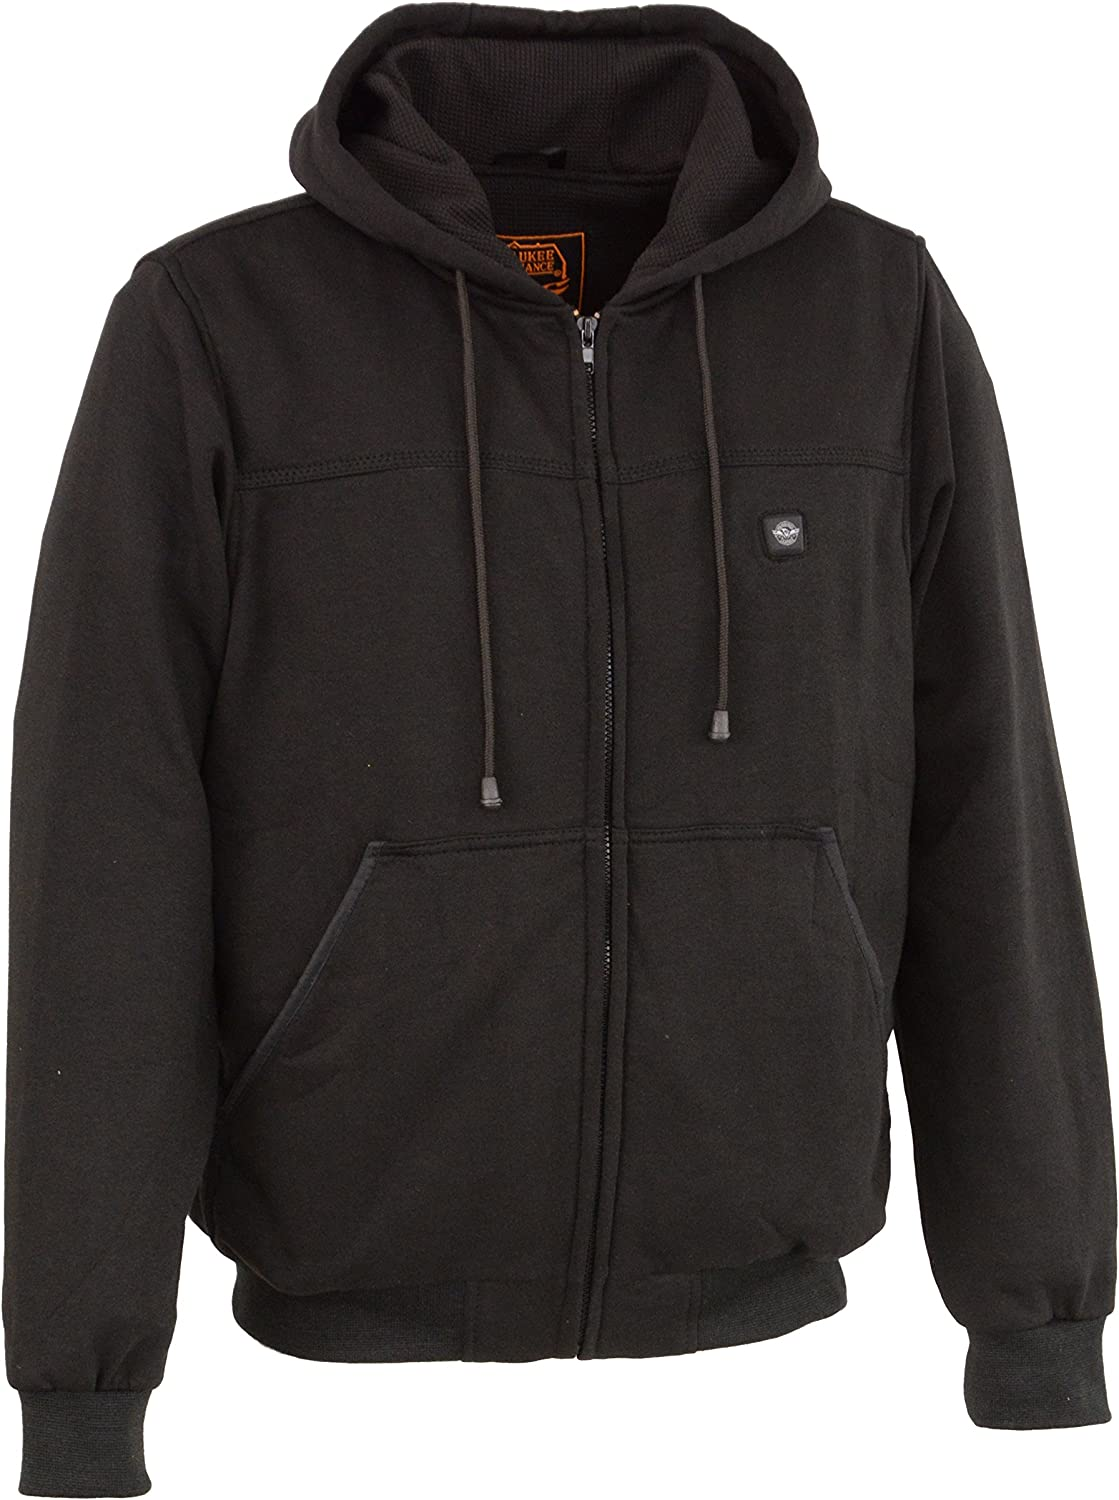 Milwaukee Leather Performance Apparel free Sale Special Price shipping 'Heated' Bat Men's Hoodie